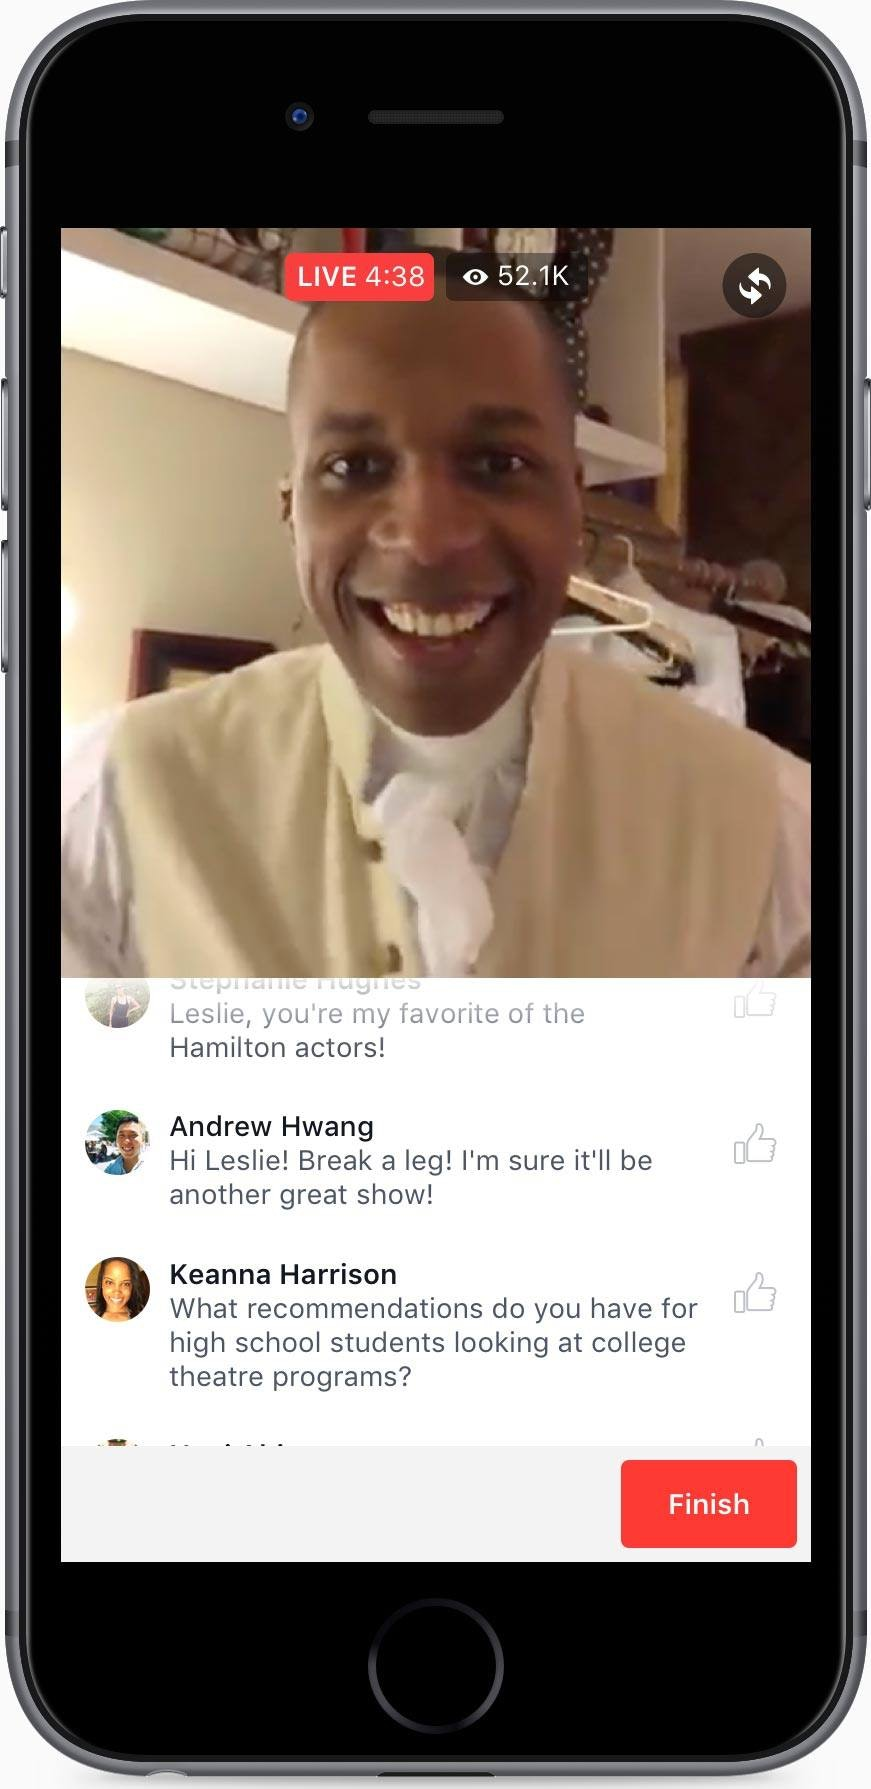 Q&A Facebook Live Video